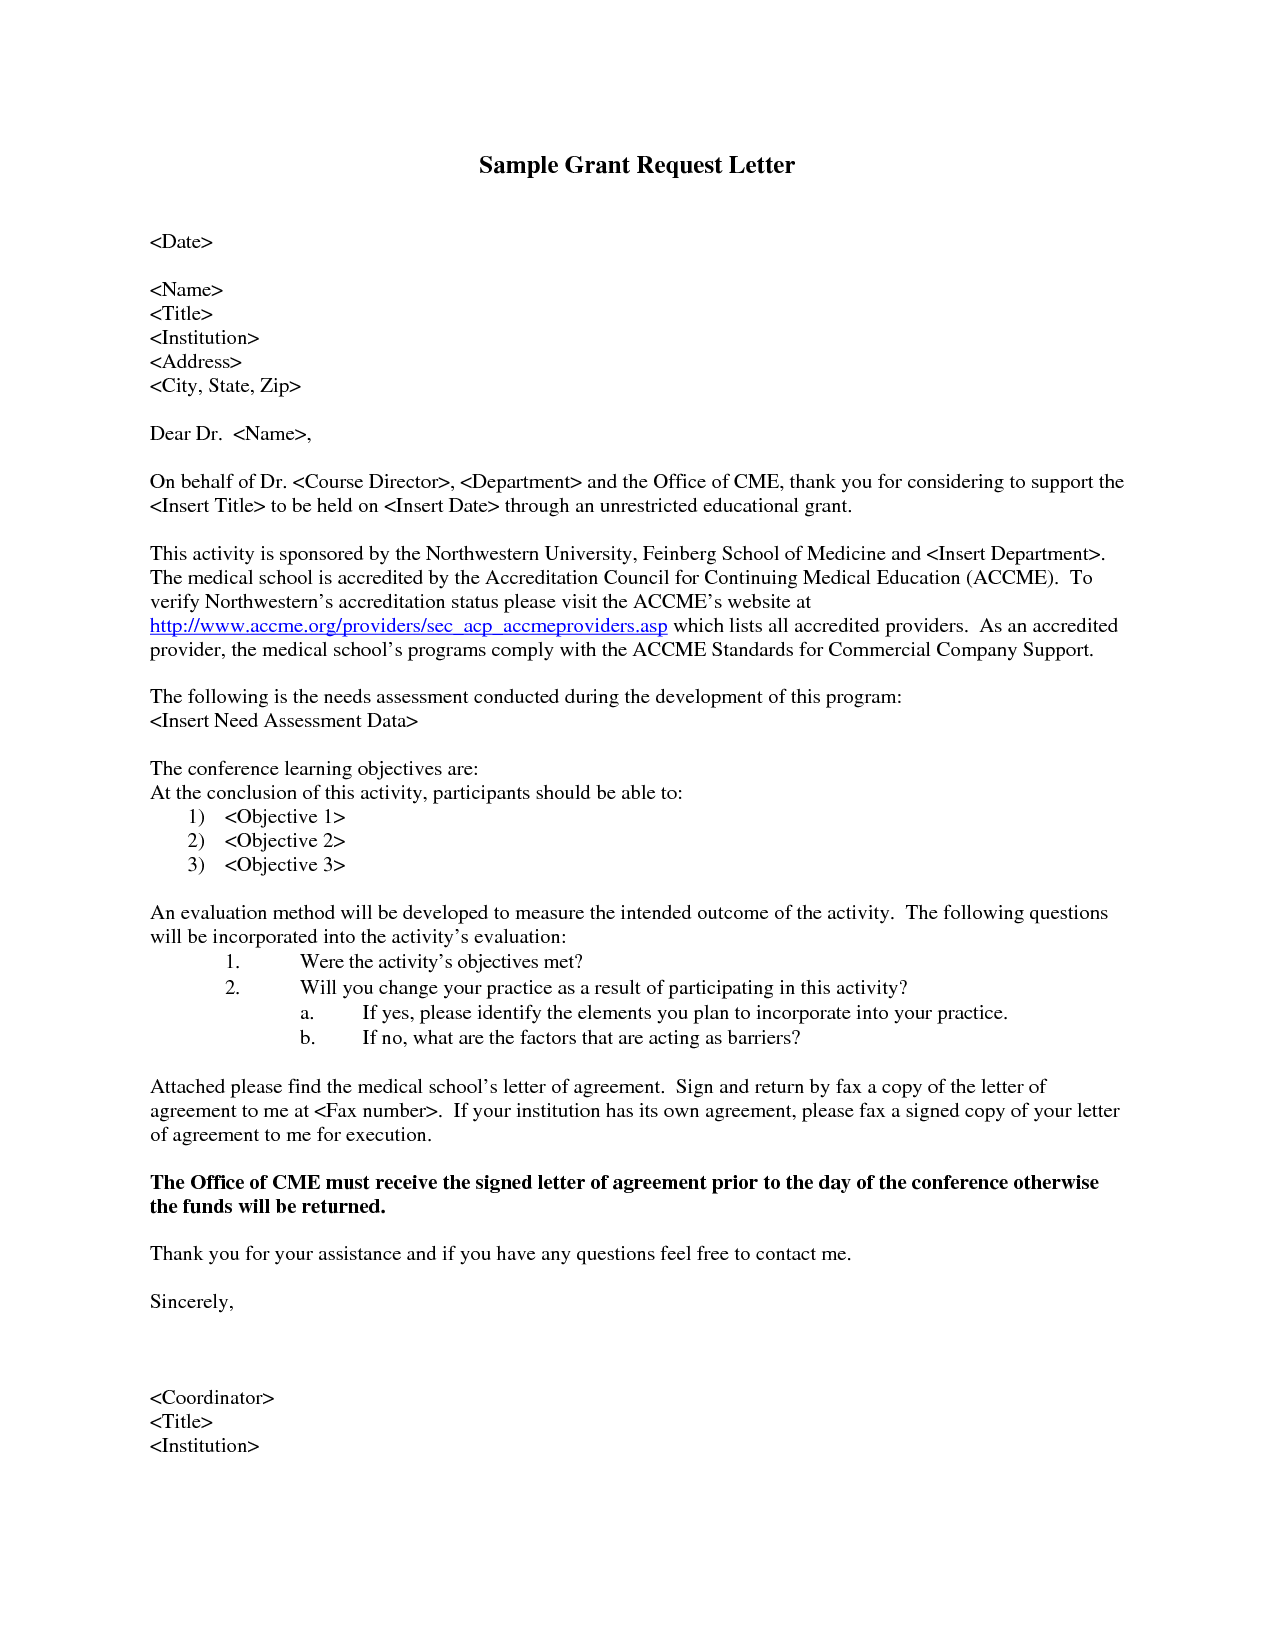 GRANT REQUEST LETTER - Write a Grant Request Letter  Private funding